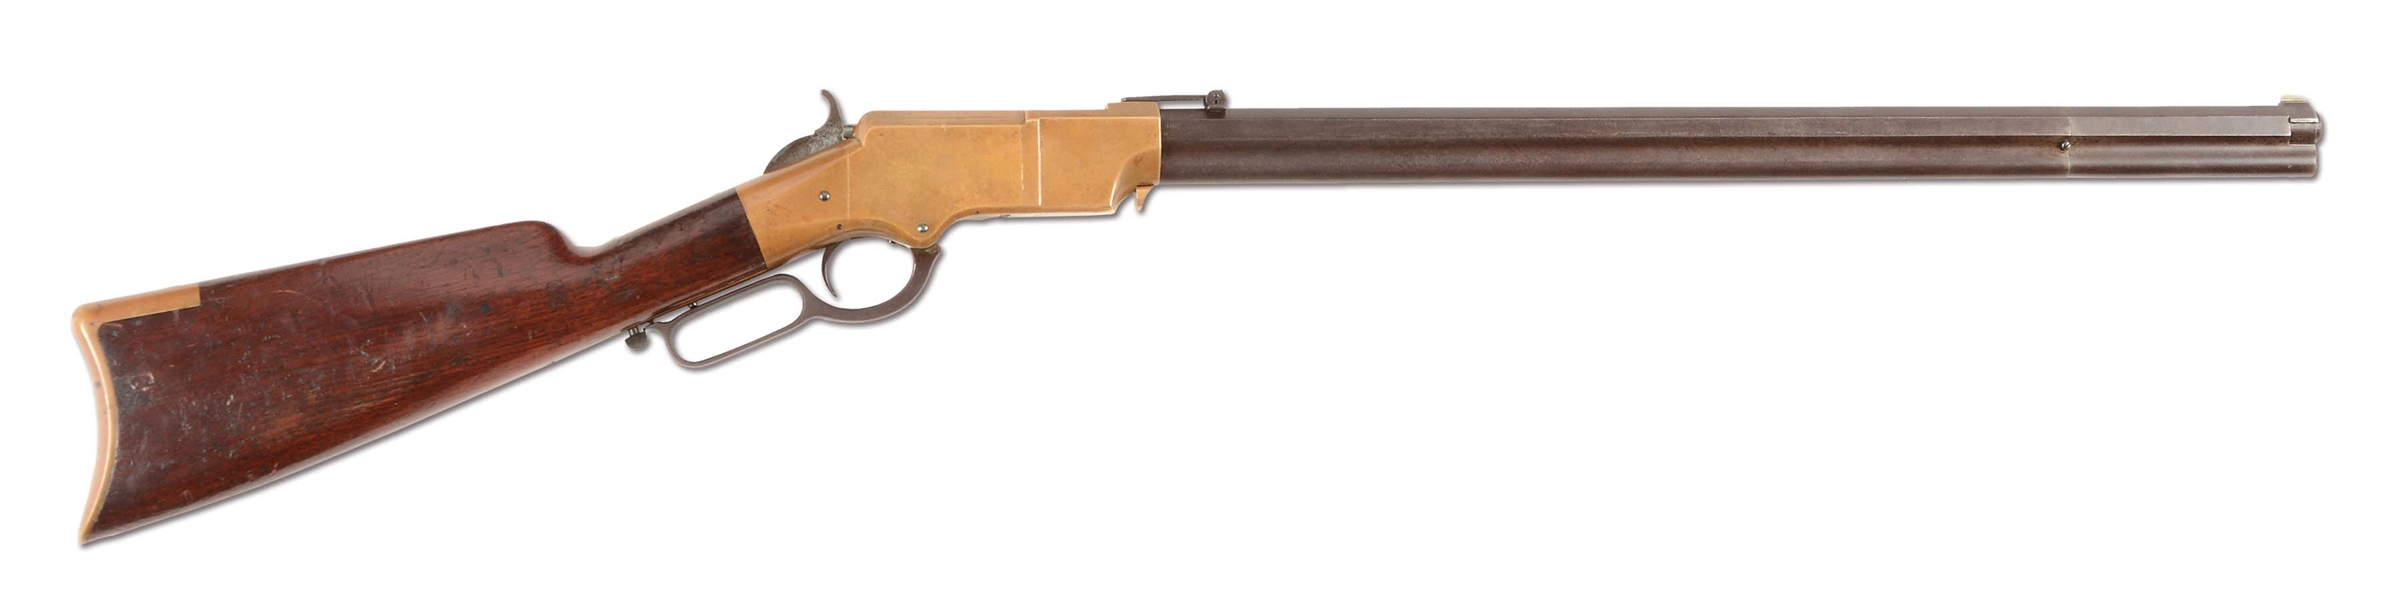 (A) EARLY NEW HAVEN ARMS MARTIAL MARKED HENRY RIFLE (1863).